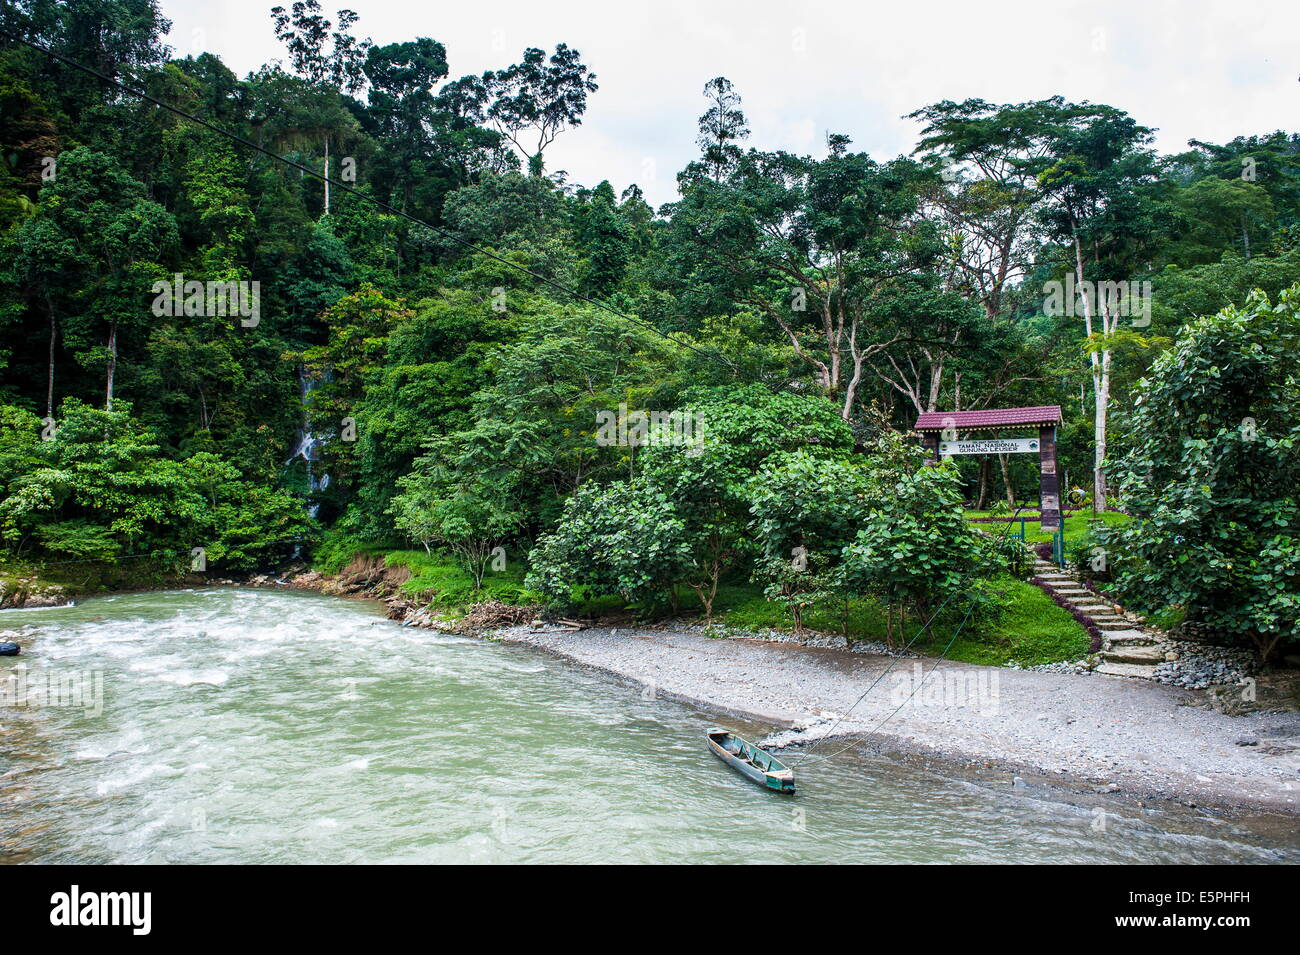 Bohorok River in front of the Bukit Lawang Orang Utan Rehabilitation station, Sumatra, Indonesia, Southeast Asia, Stock Photo